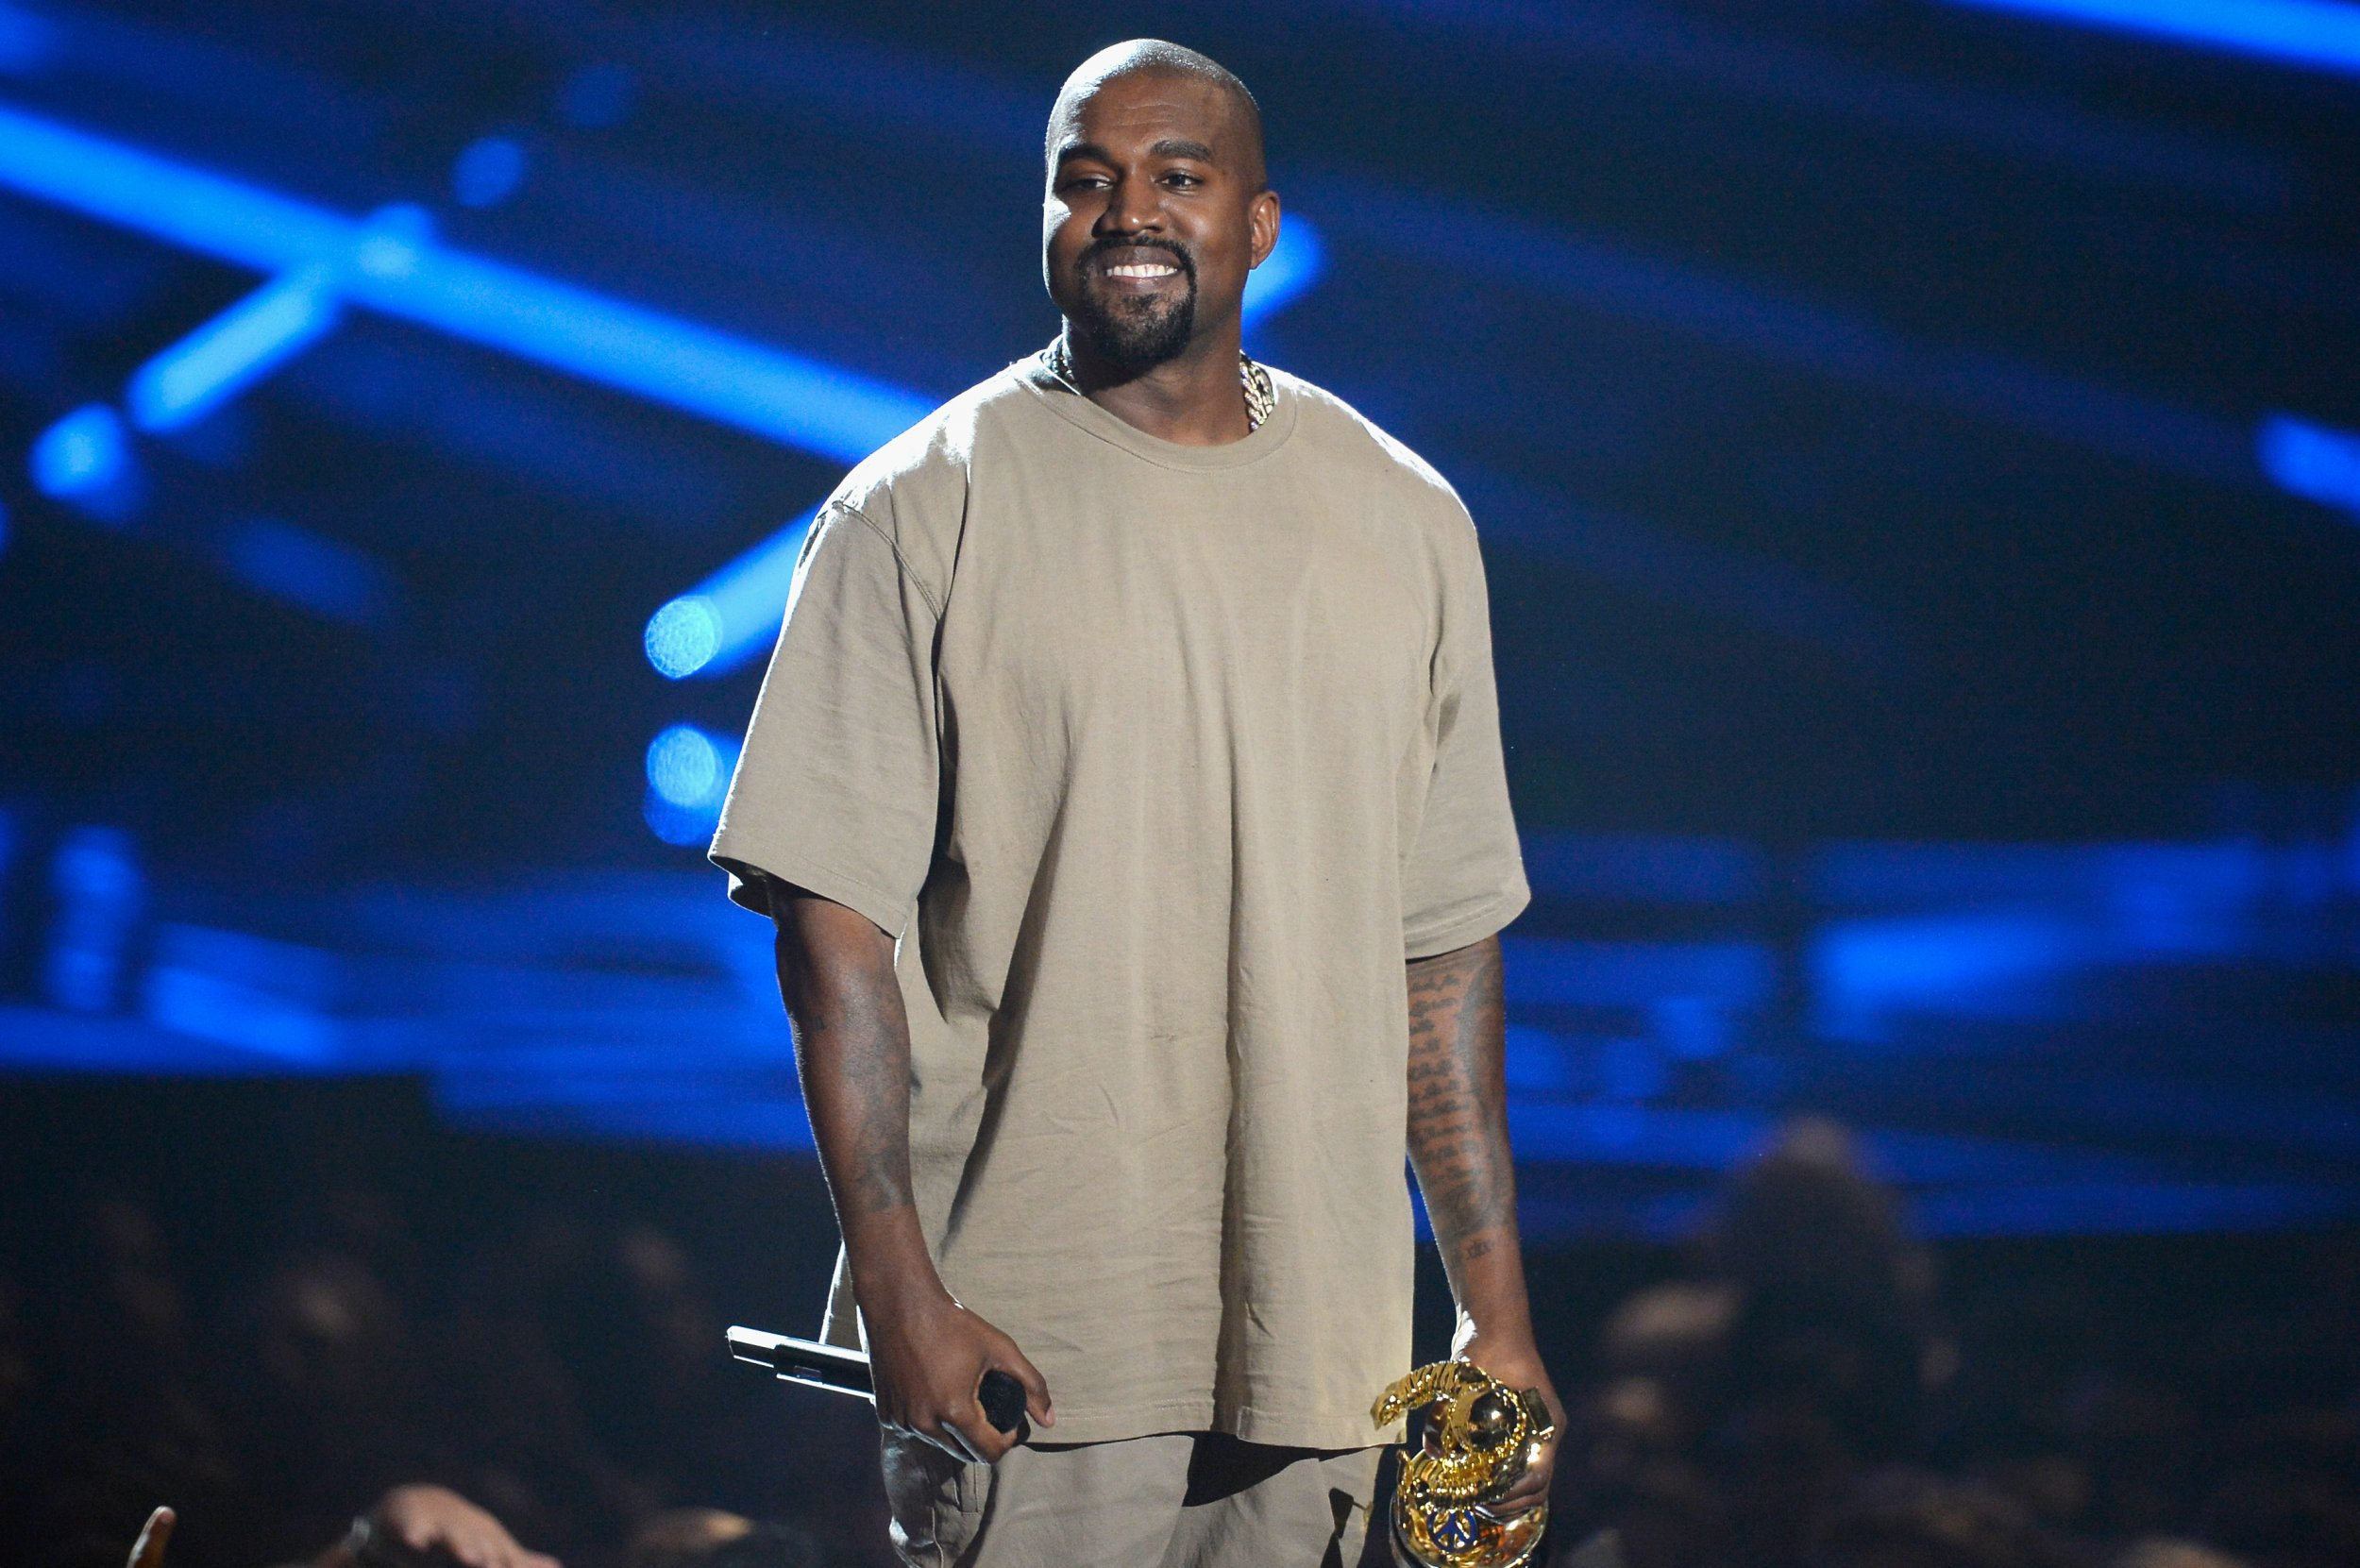 eb11d91b56ad GettyImages-486015768 (1) Kanye West speaks onstage during ...